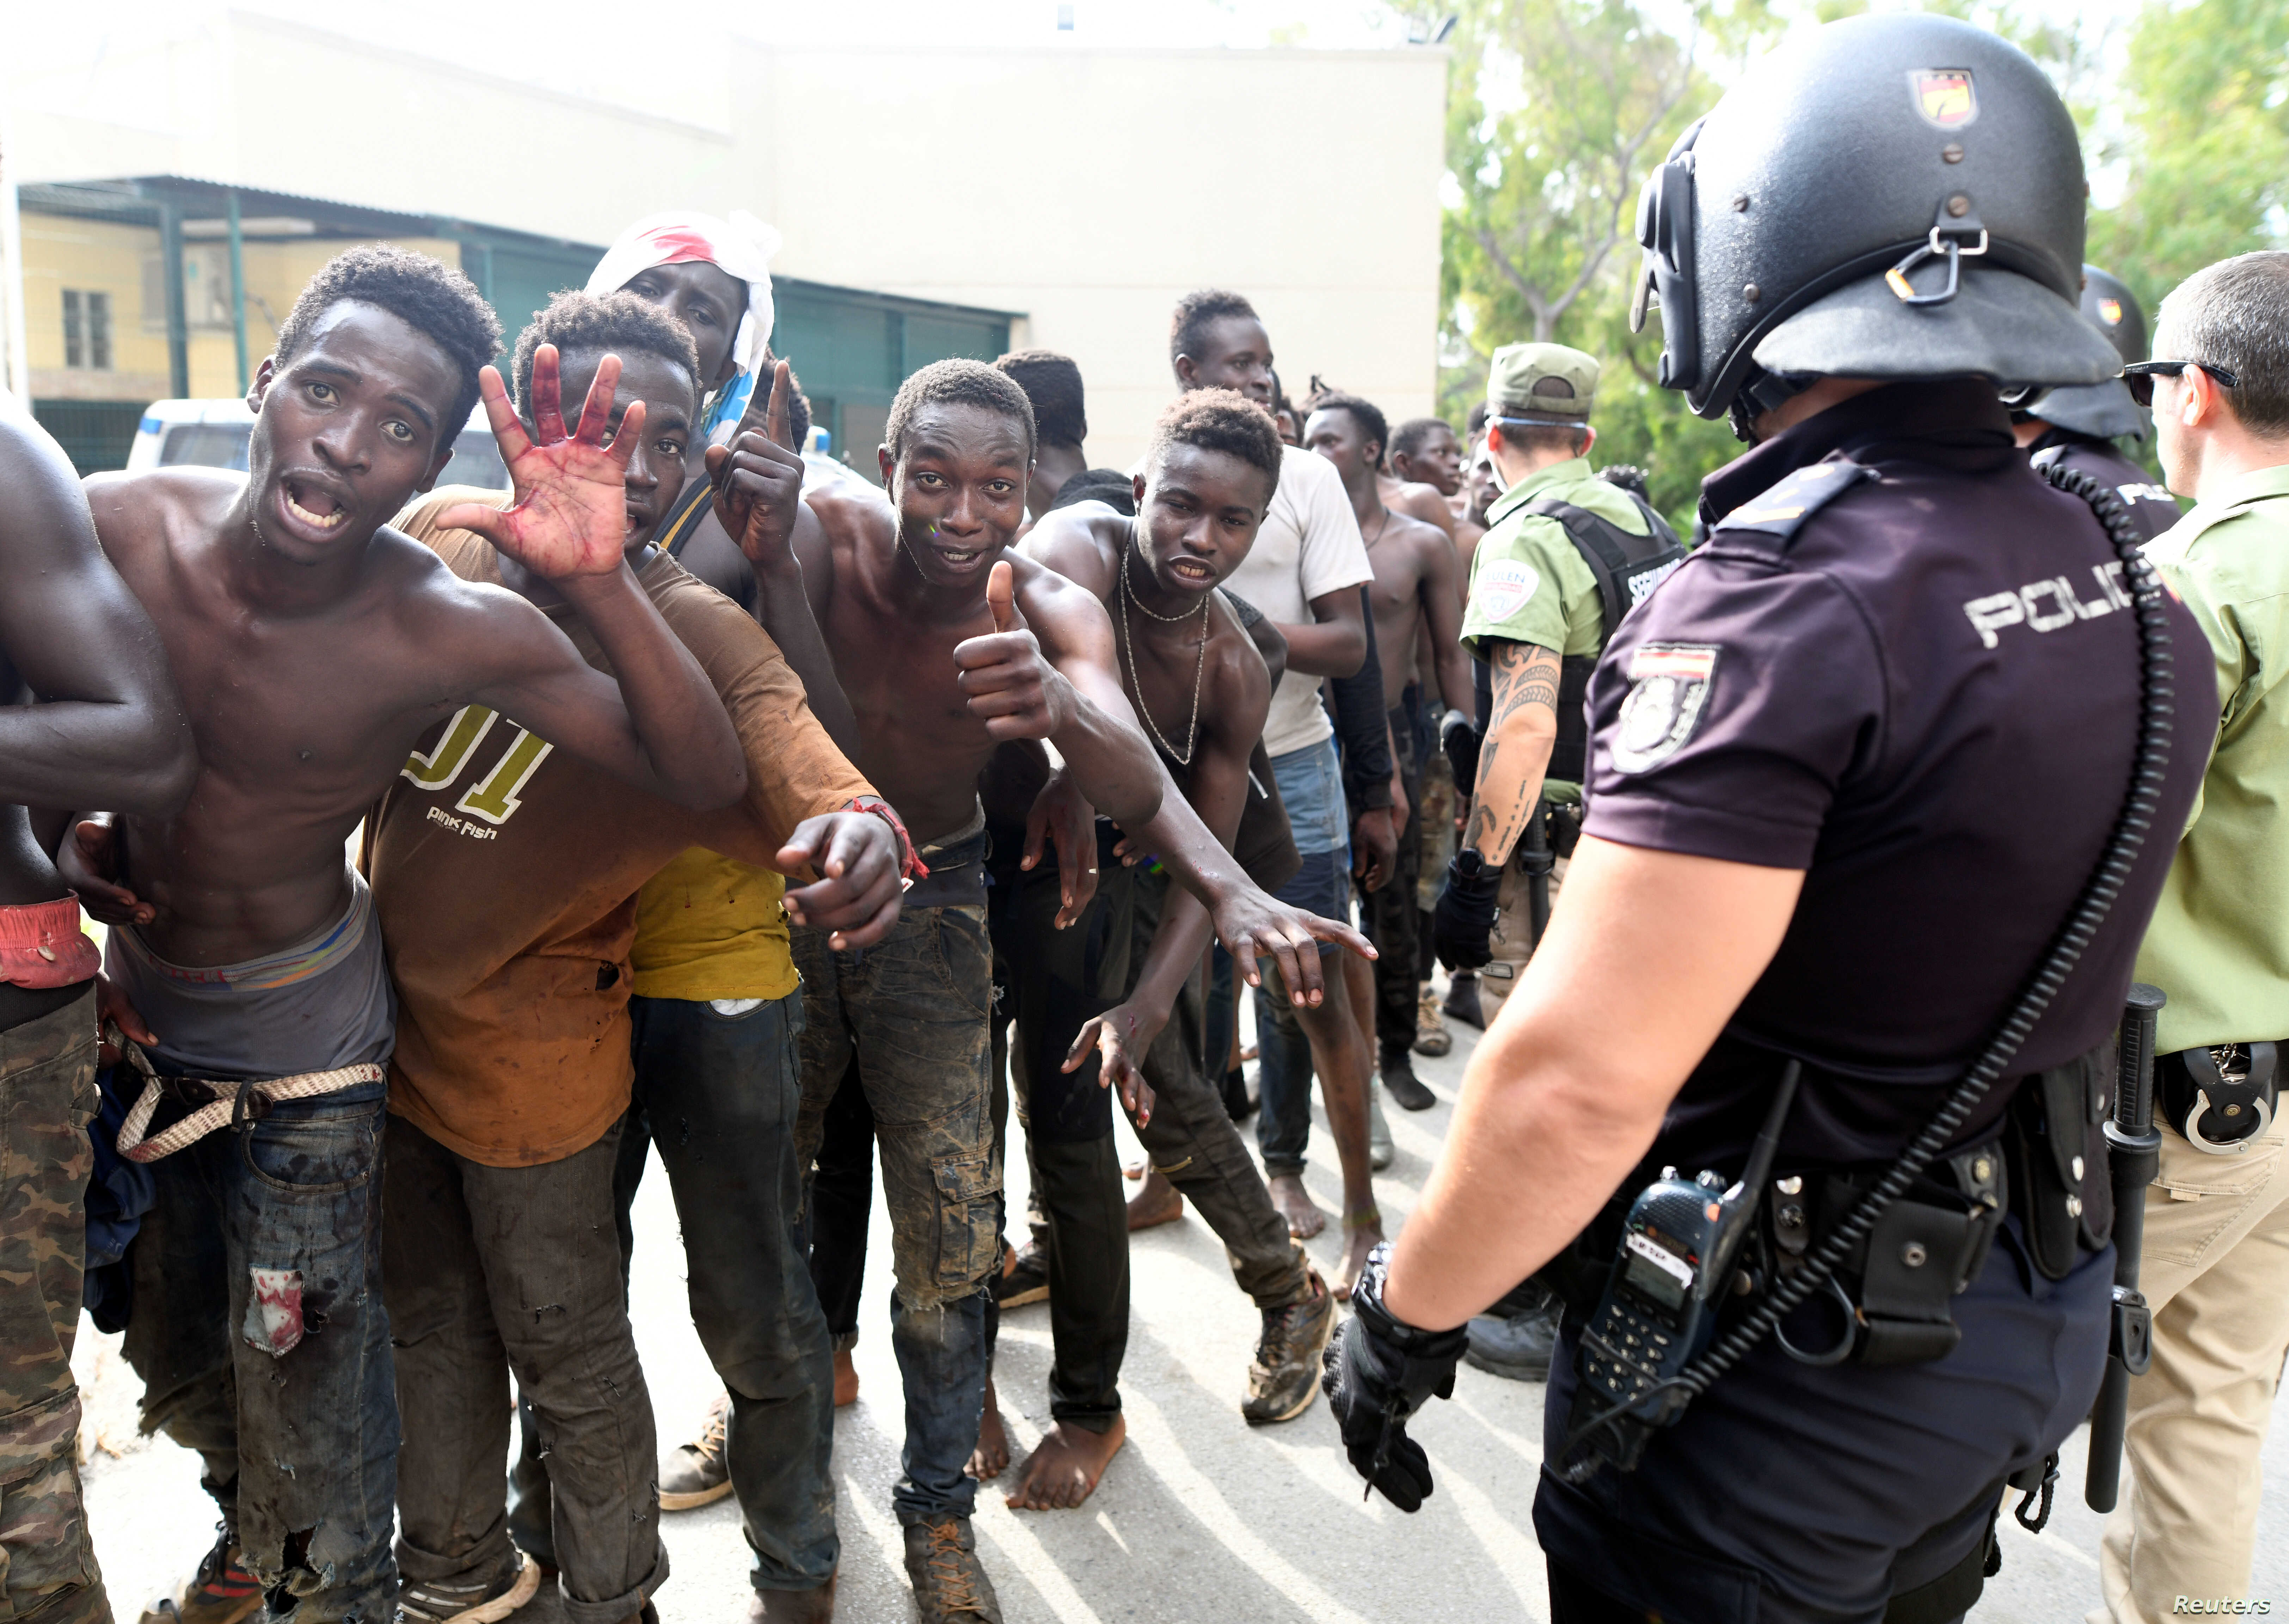 African immigrants celebrate as they enter the immigrant center CETI in the Spanish enclave Ceuta, after some 200 refugees crossed the border fence between Morocco and Ceuta, Aug. 22, 2018